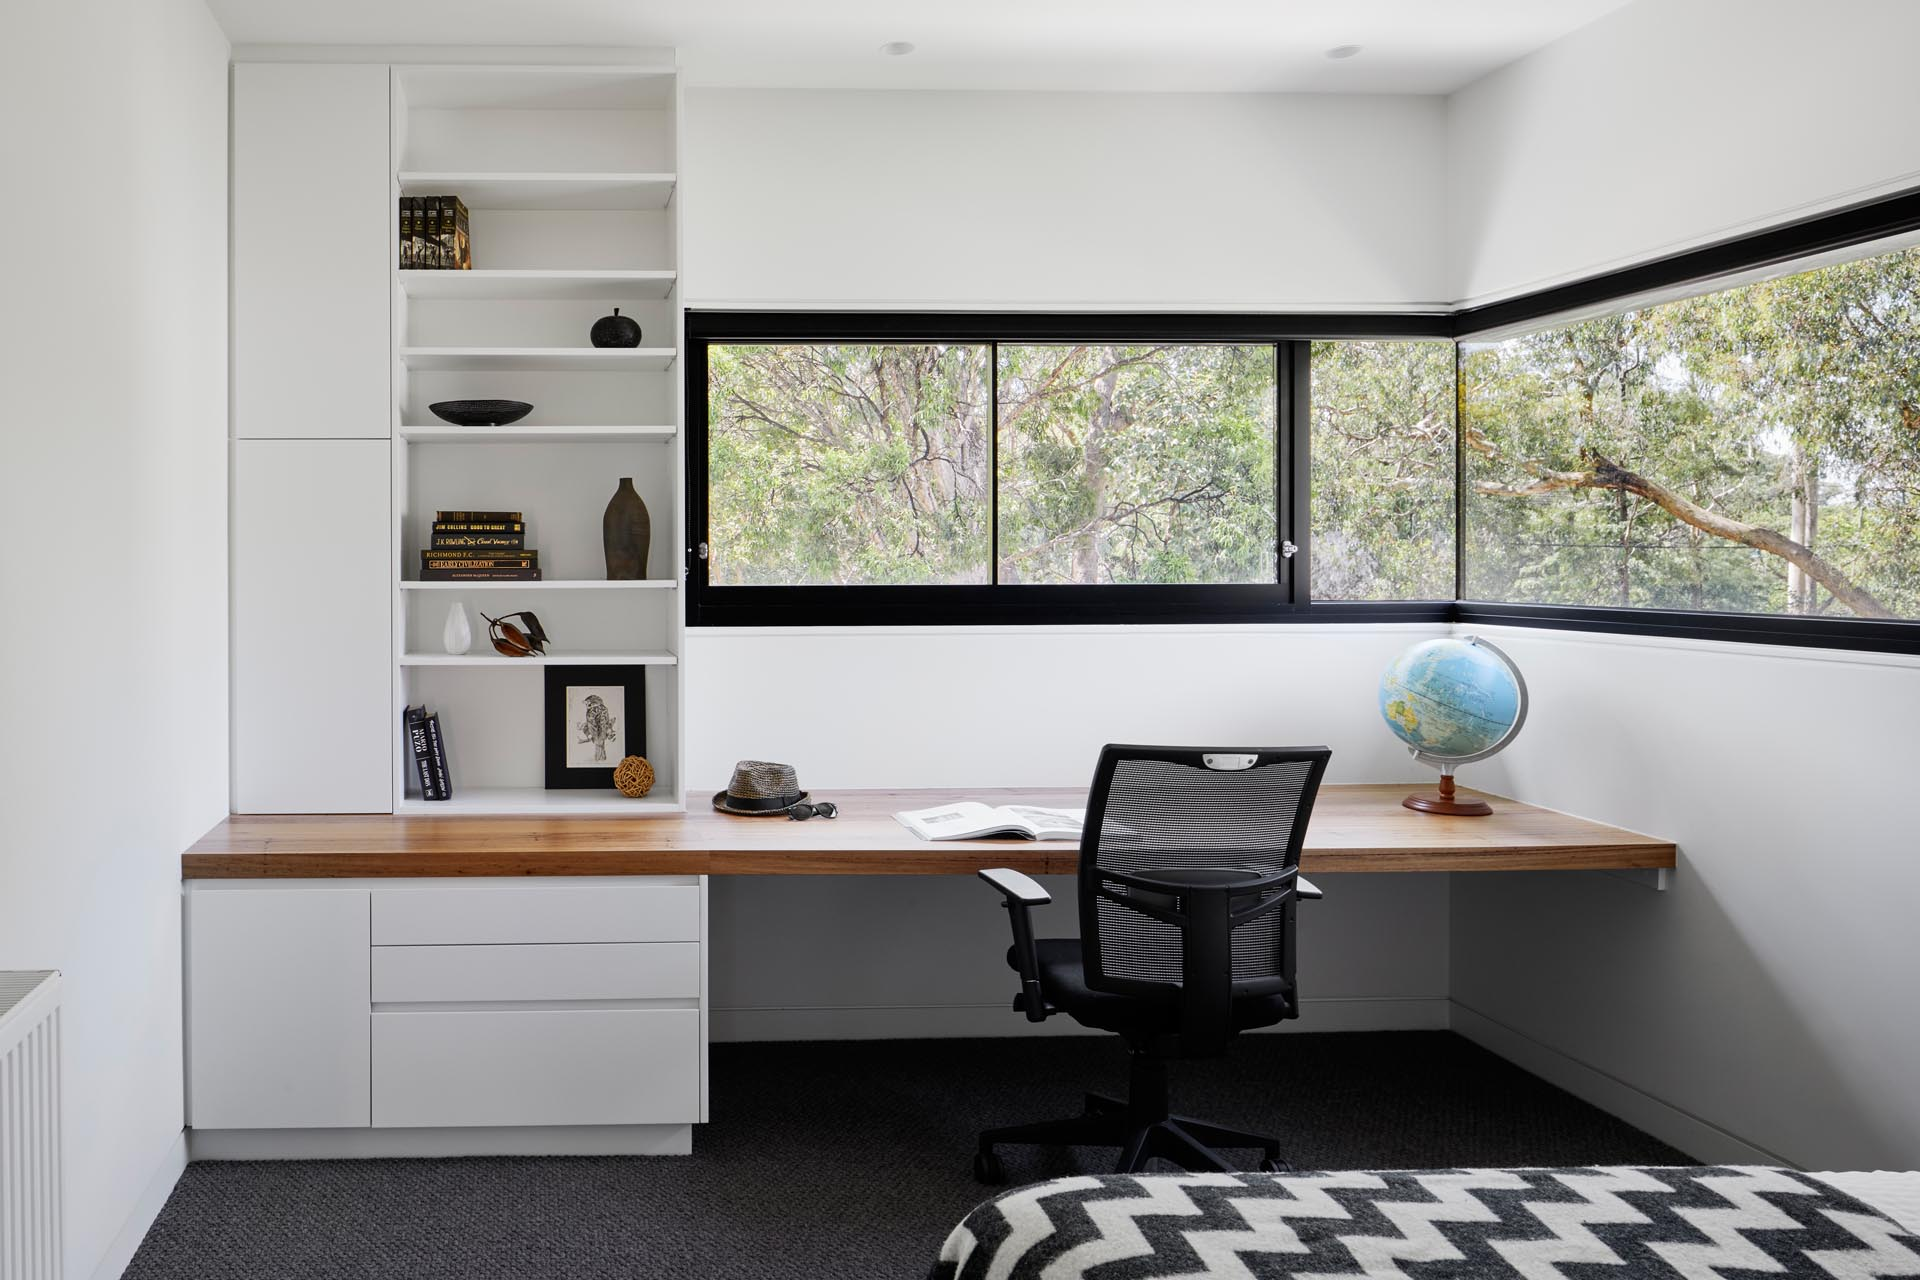 In this modern bedroom, there's wrap-around windows and a built-in wood desk with drawers, cabinets, and shelving.